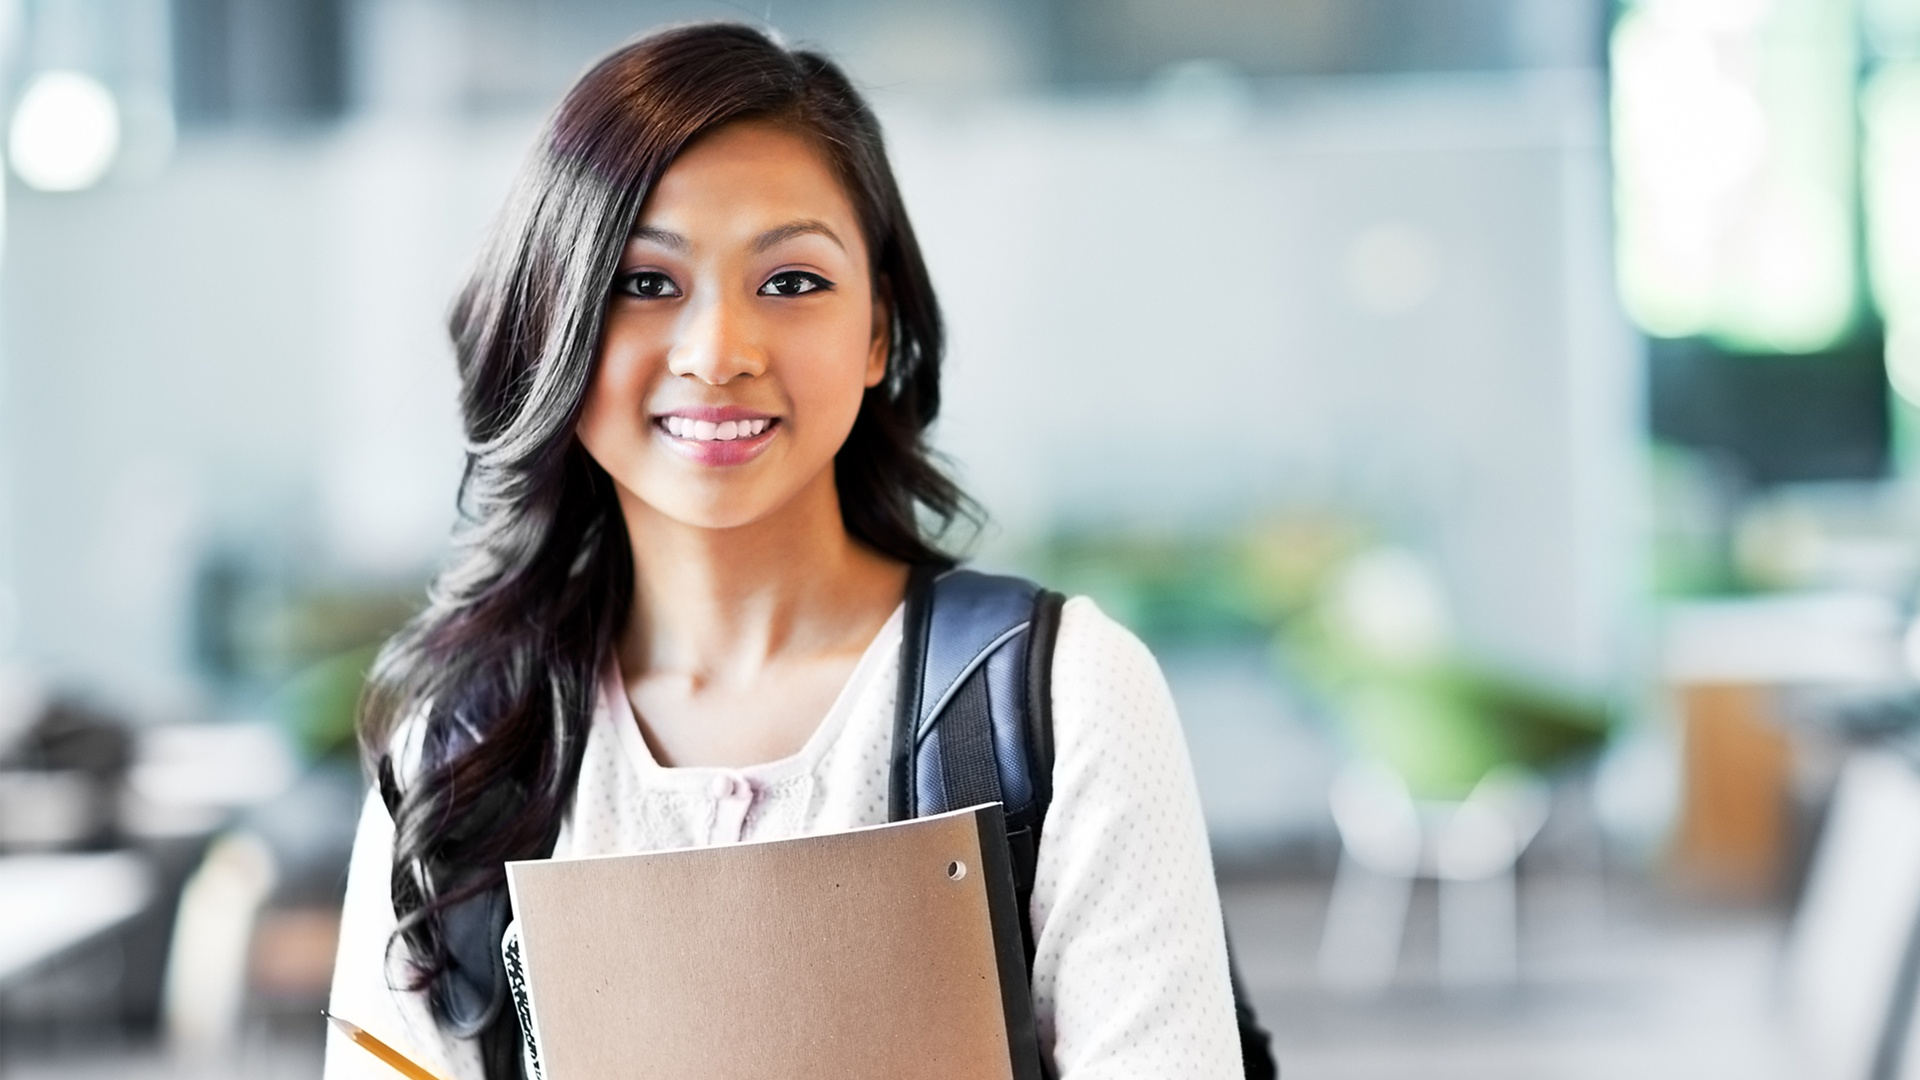 SAFE offers scholarships for college-bound high school students